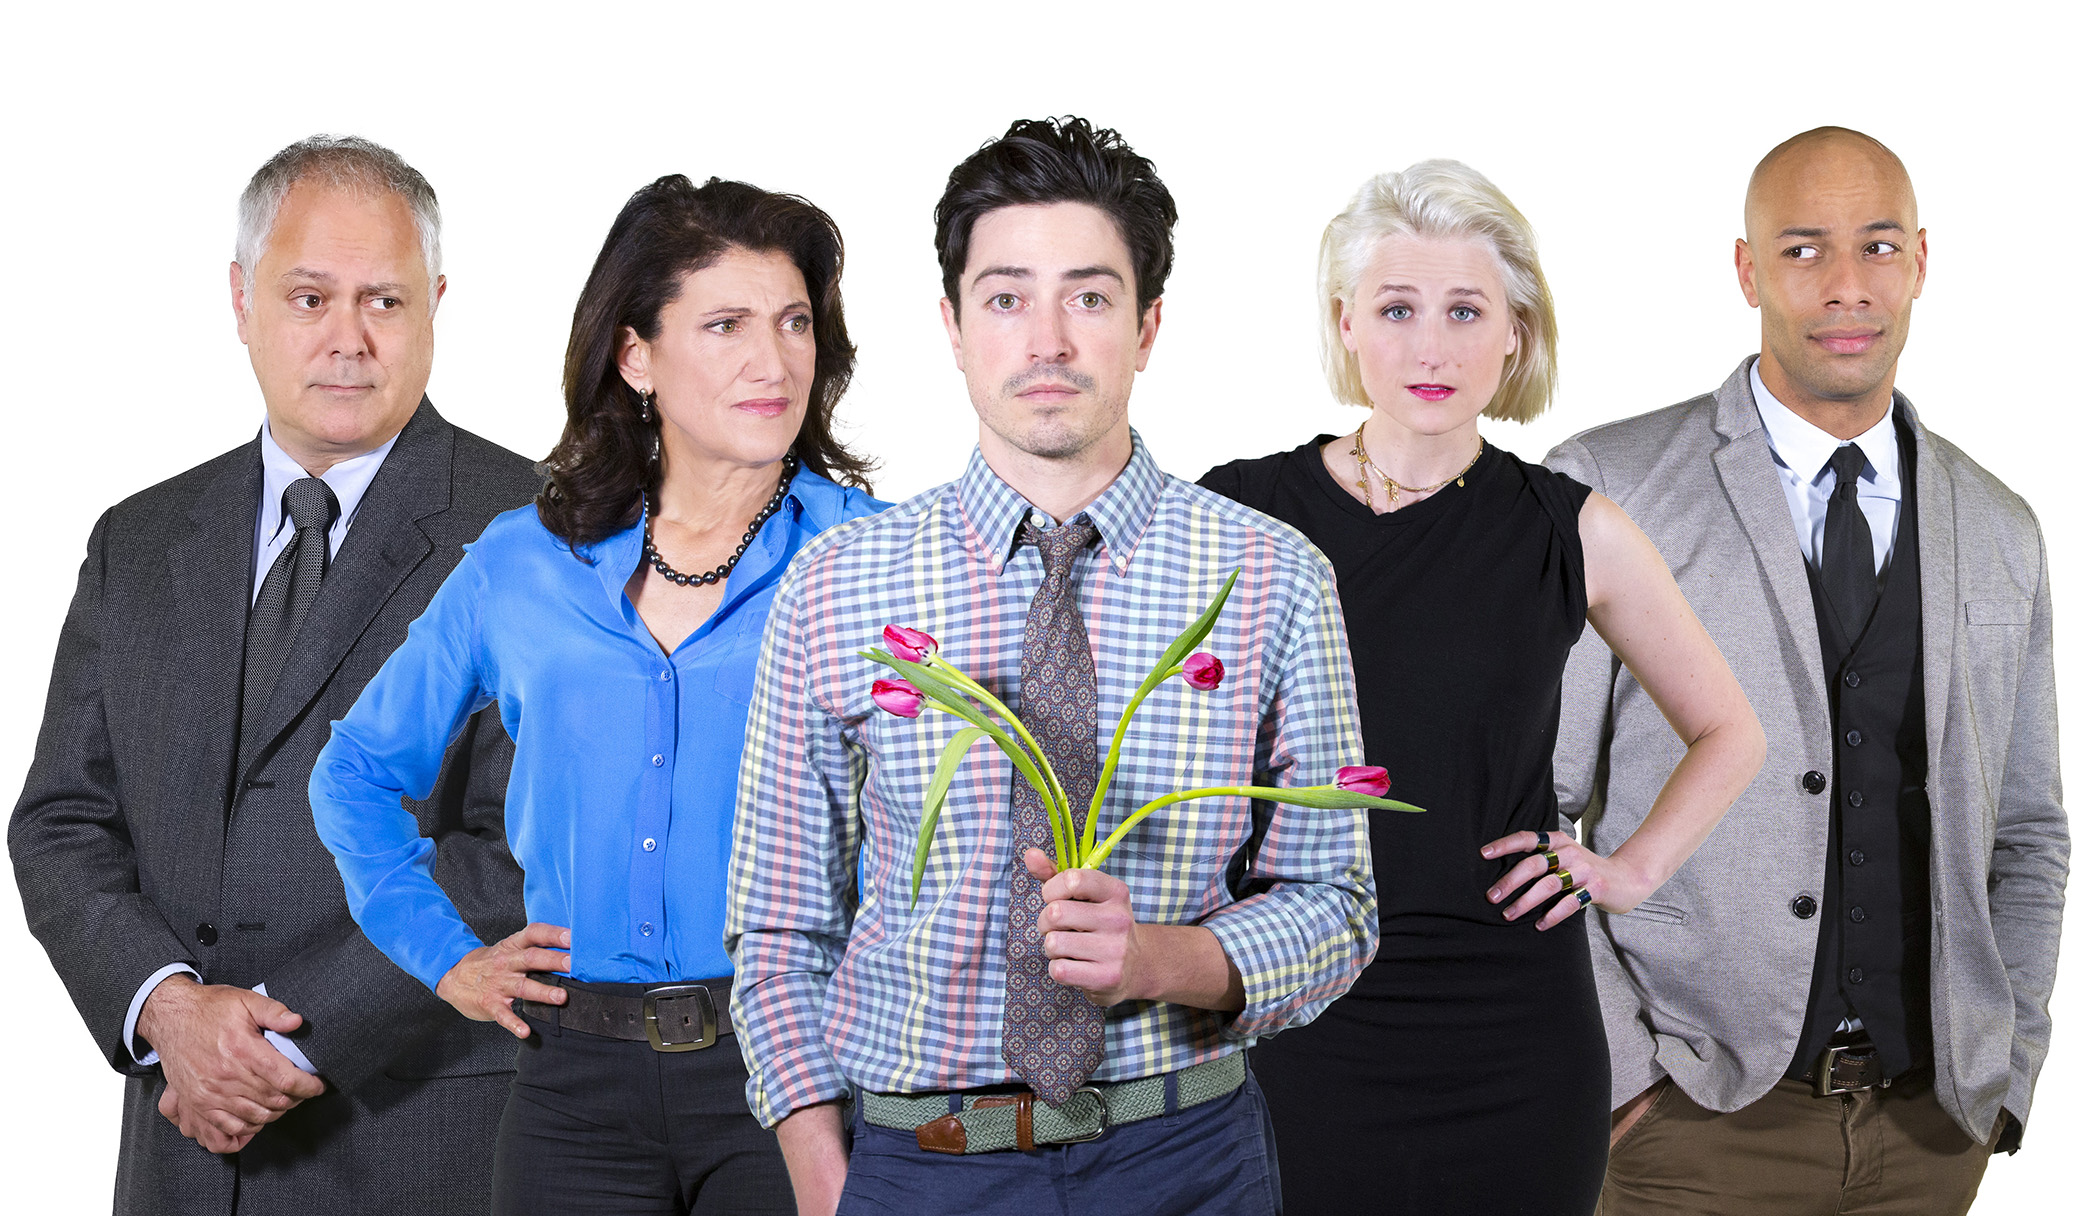 Ben Feldman & Mamie Gummer are coming to SCR in THE SIEGEL